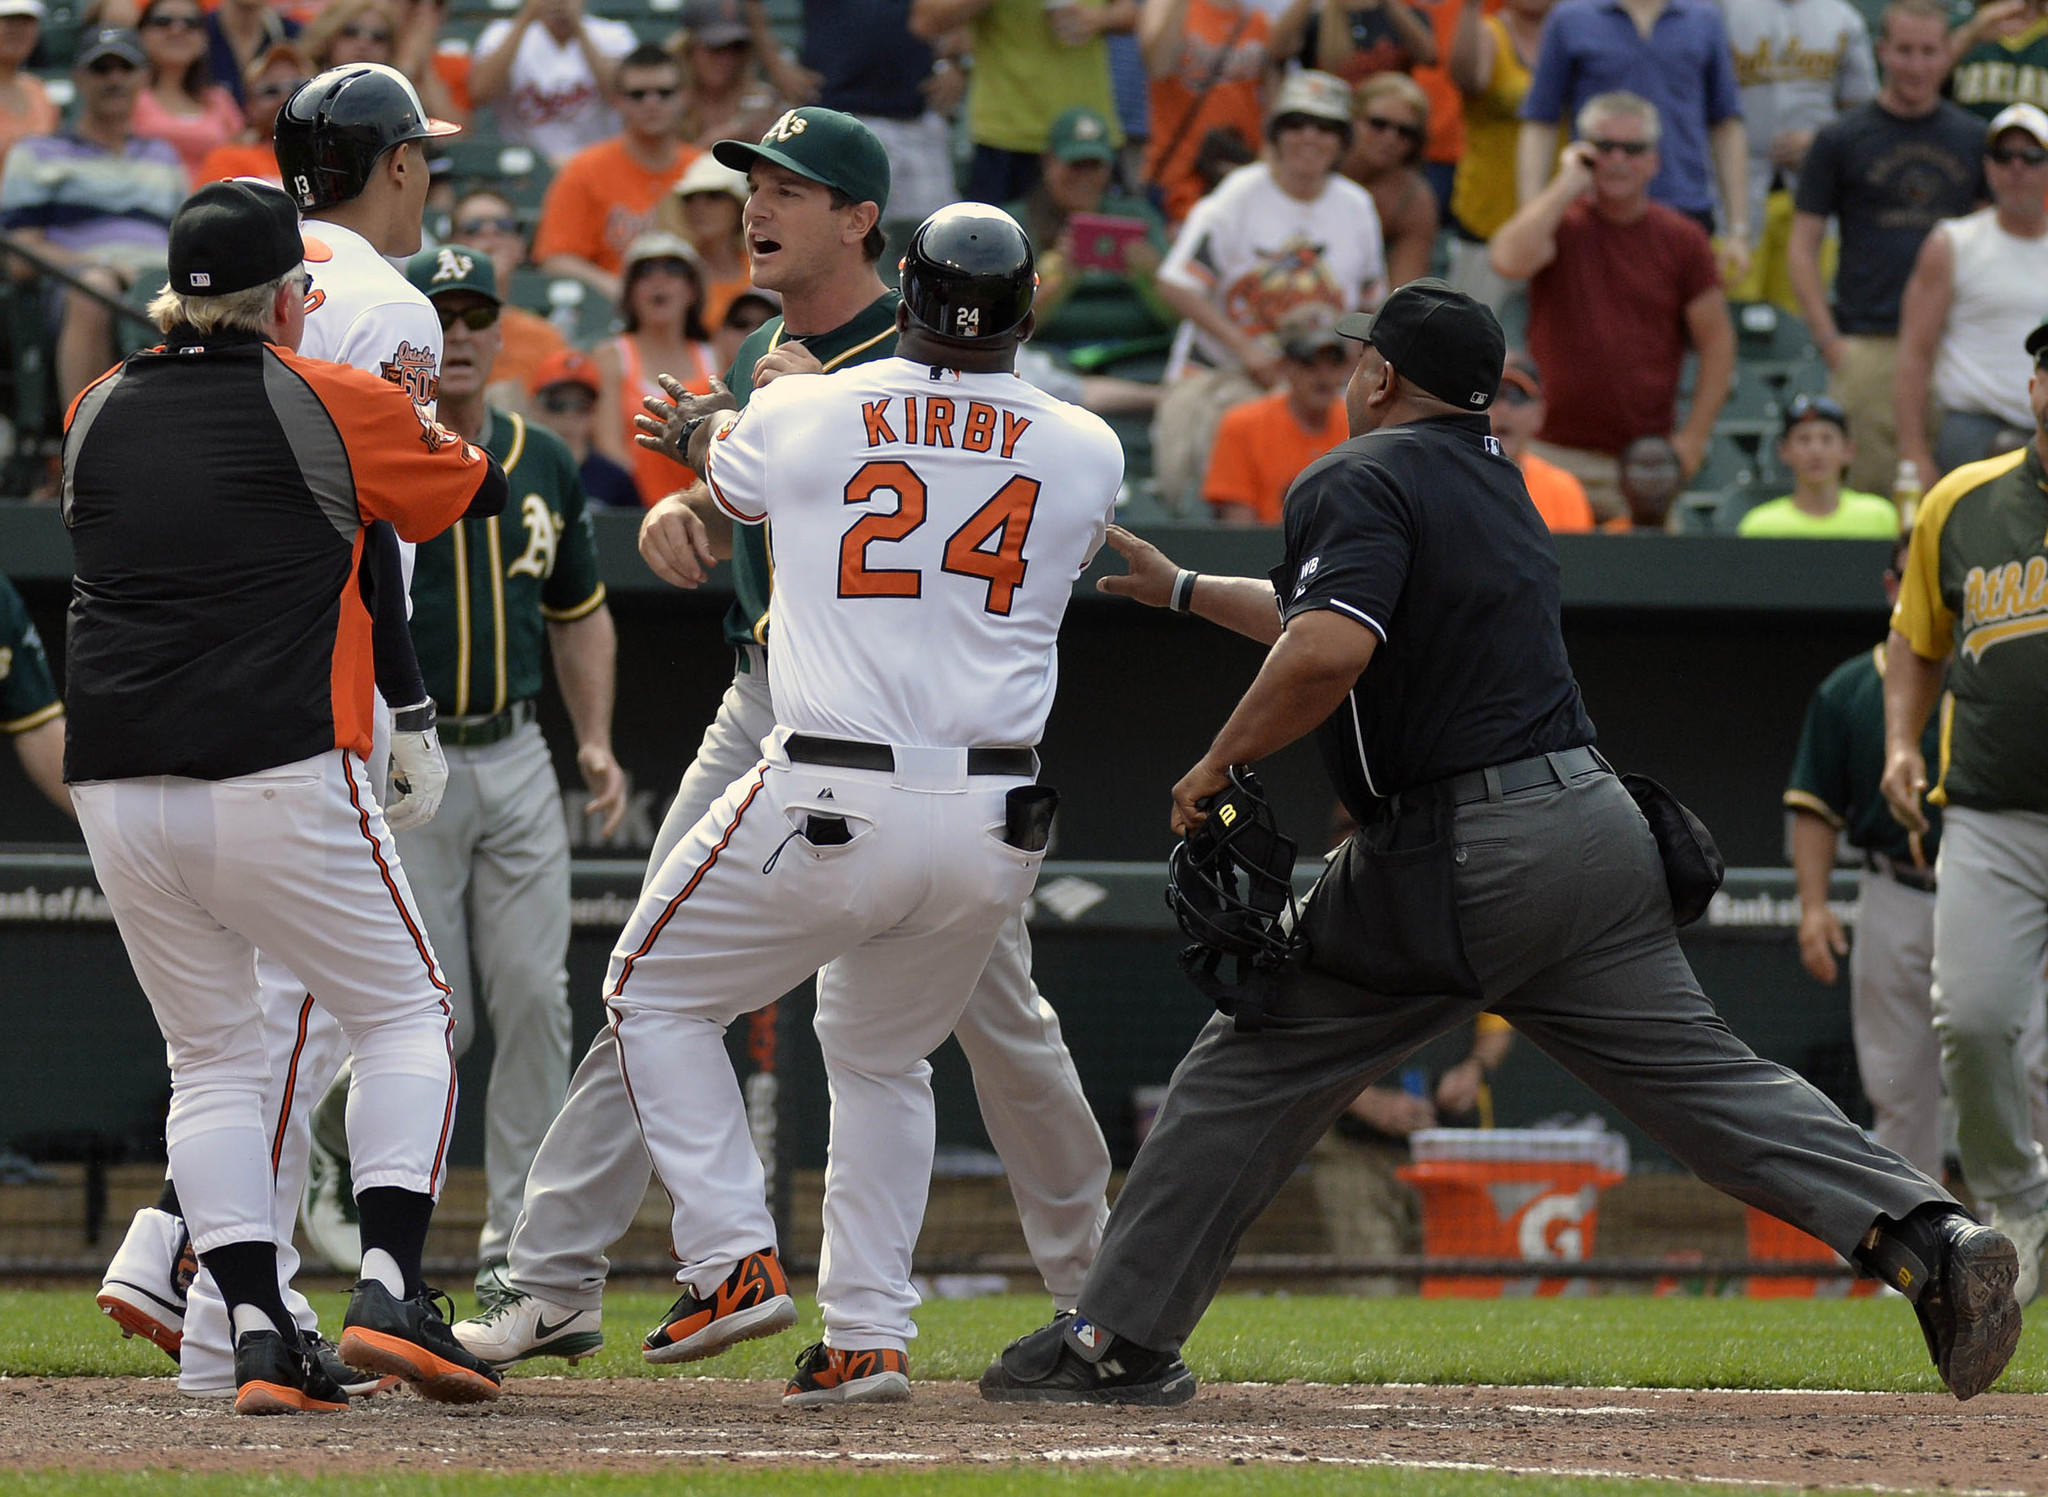 Orioles manager Buck Showalter, left, holds back third baseman Manny Machado, second from left, as first base coach Wayne Kirby, center, holds back an Oakland Athletics player in the eighth inning at Camden Yards.